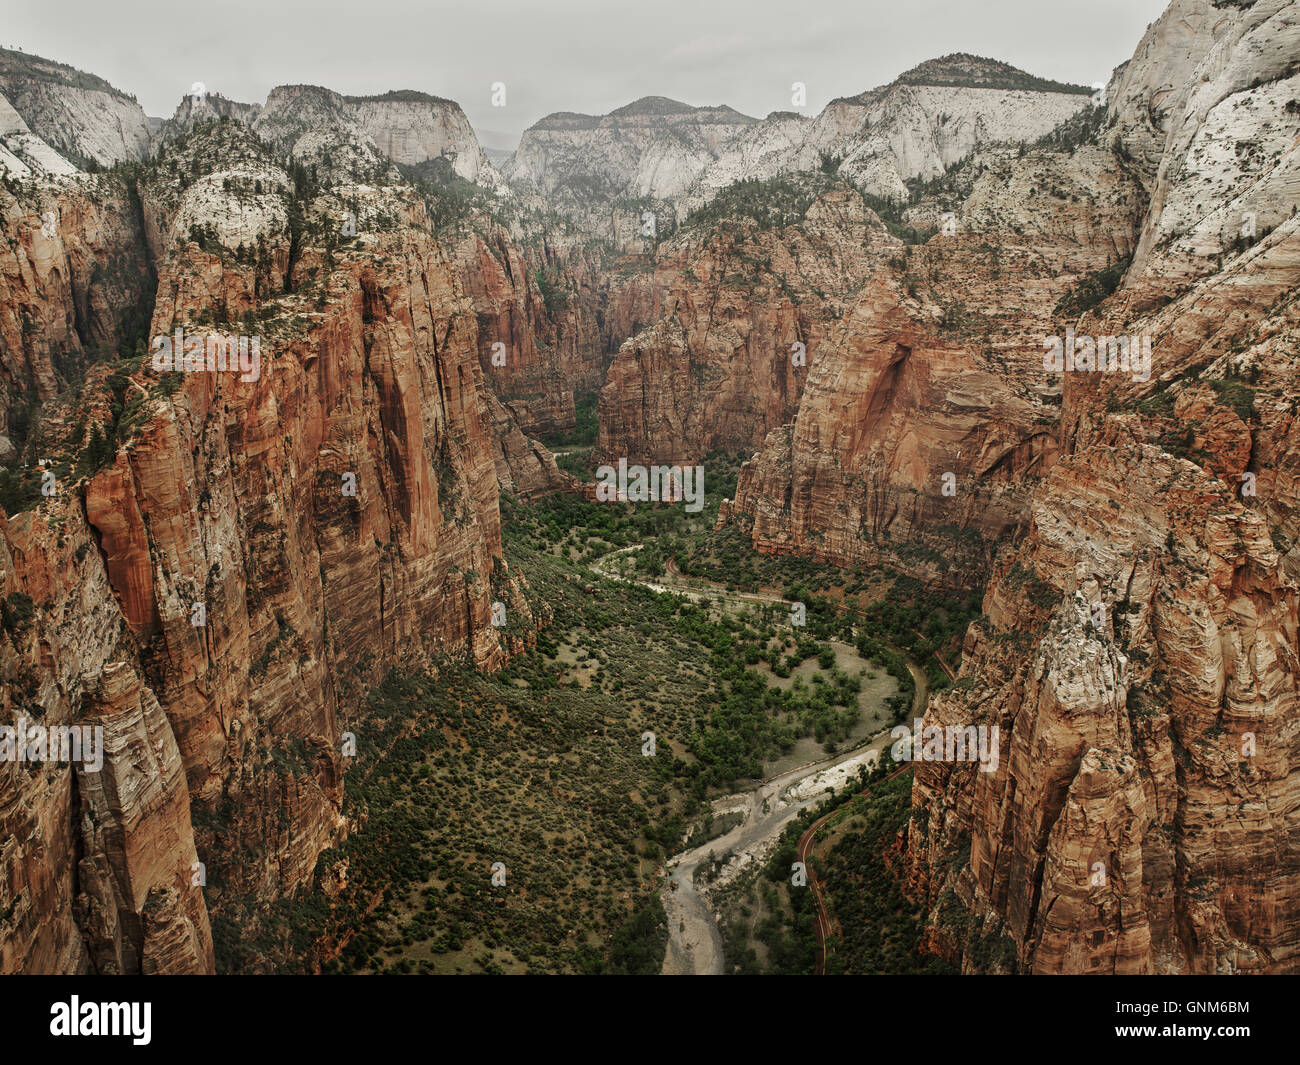 The lookout from the top of Angel's Landing in Zion National Park - Stock Image